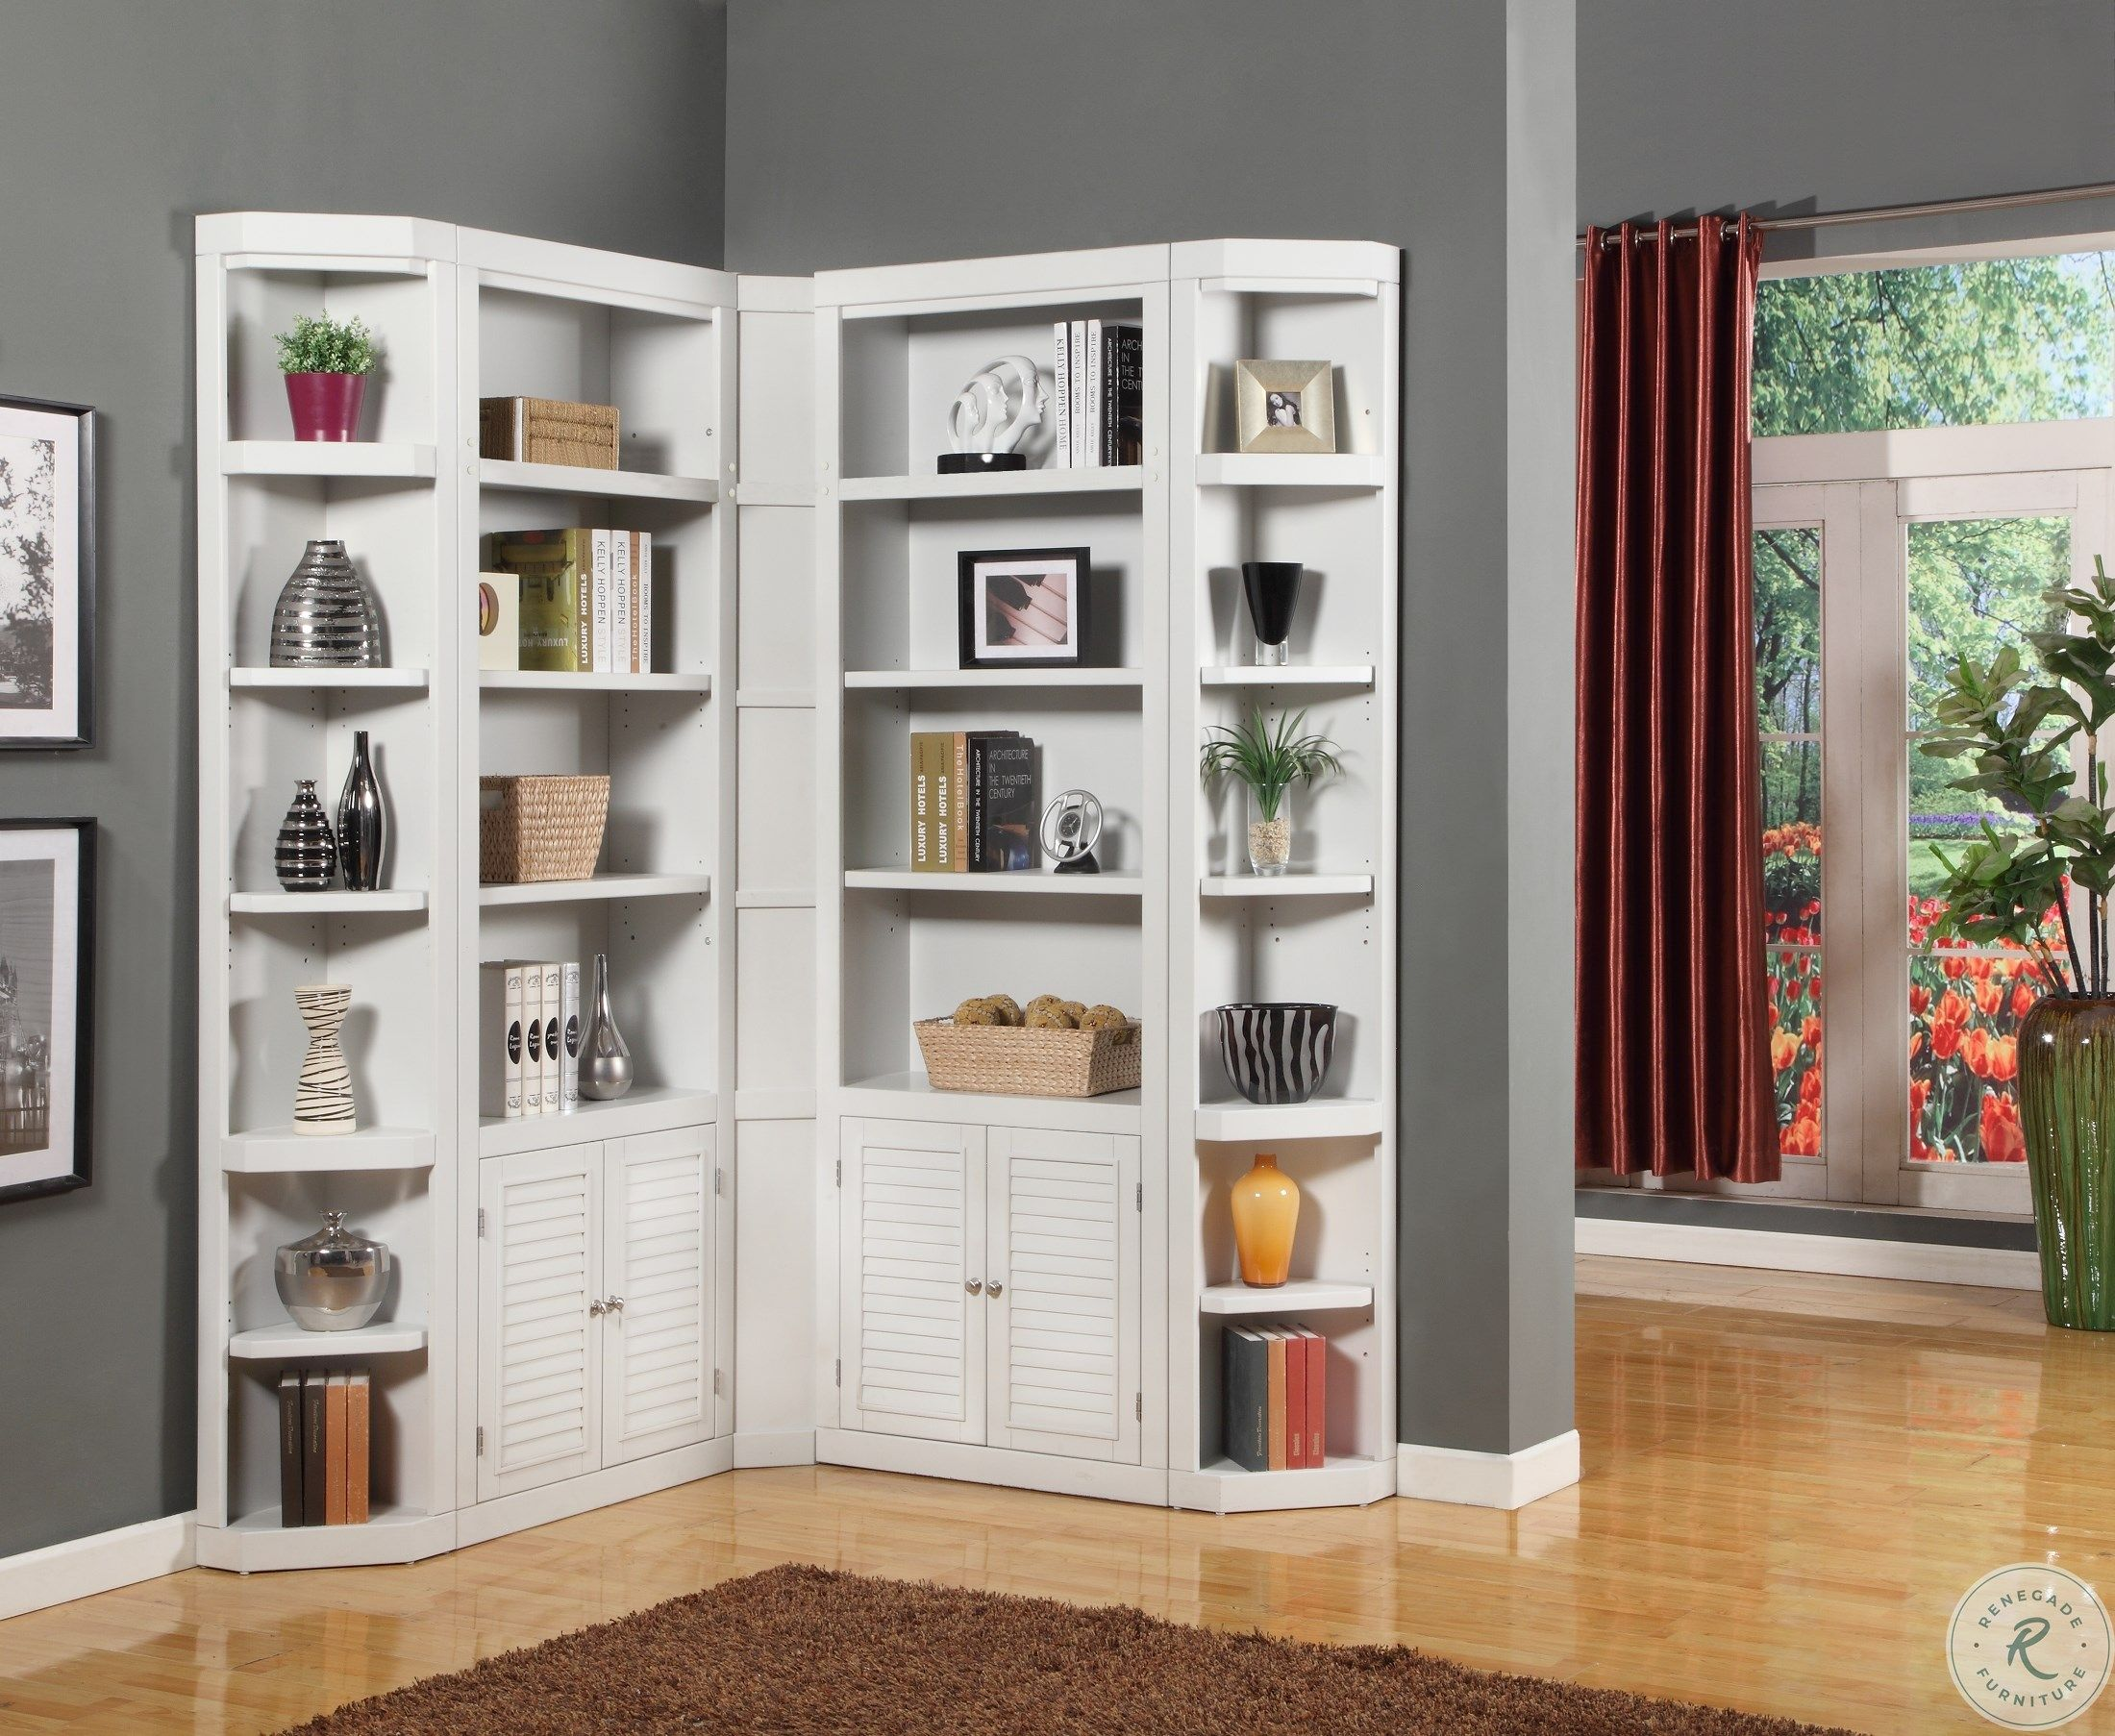 Boca L Shape Bookcase Wall In 2021 Corner Cabinet Living Room Living Room Corner Bookcase Design Corner cabinets for living rooms